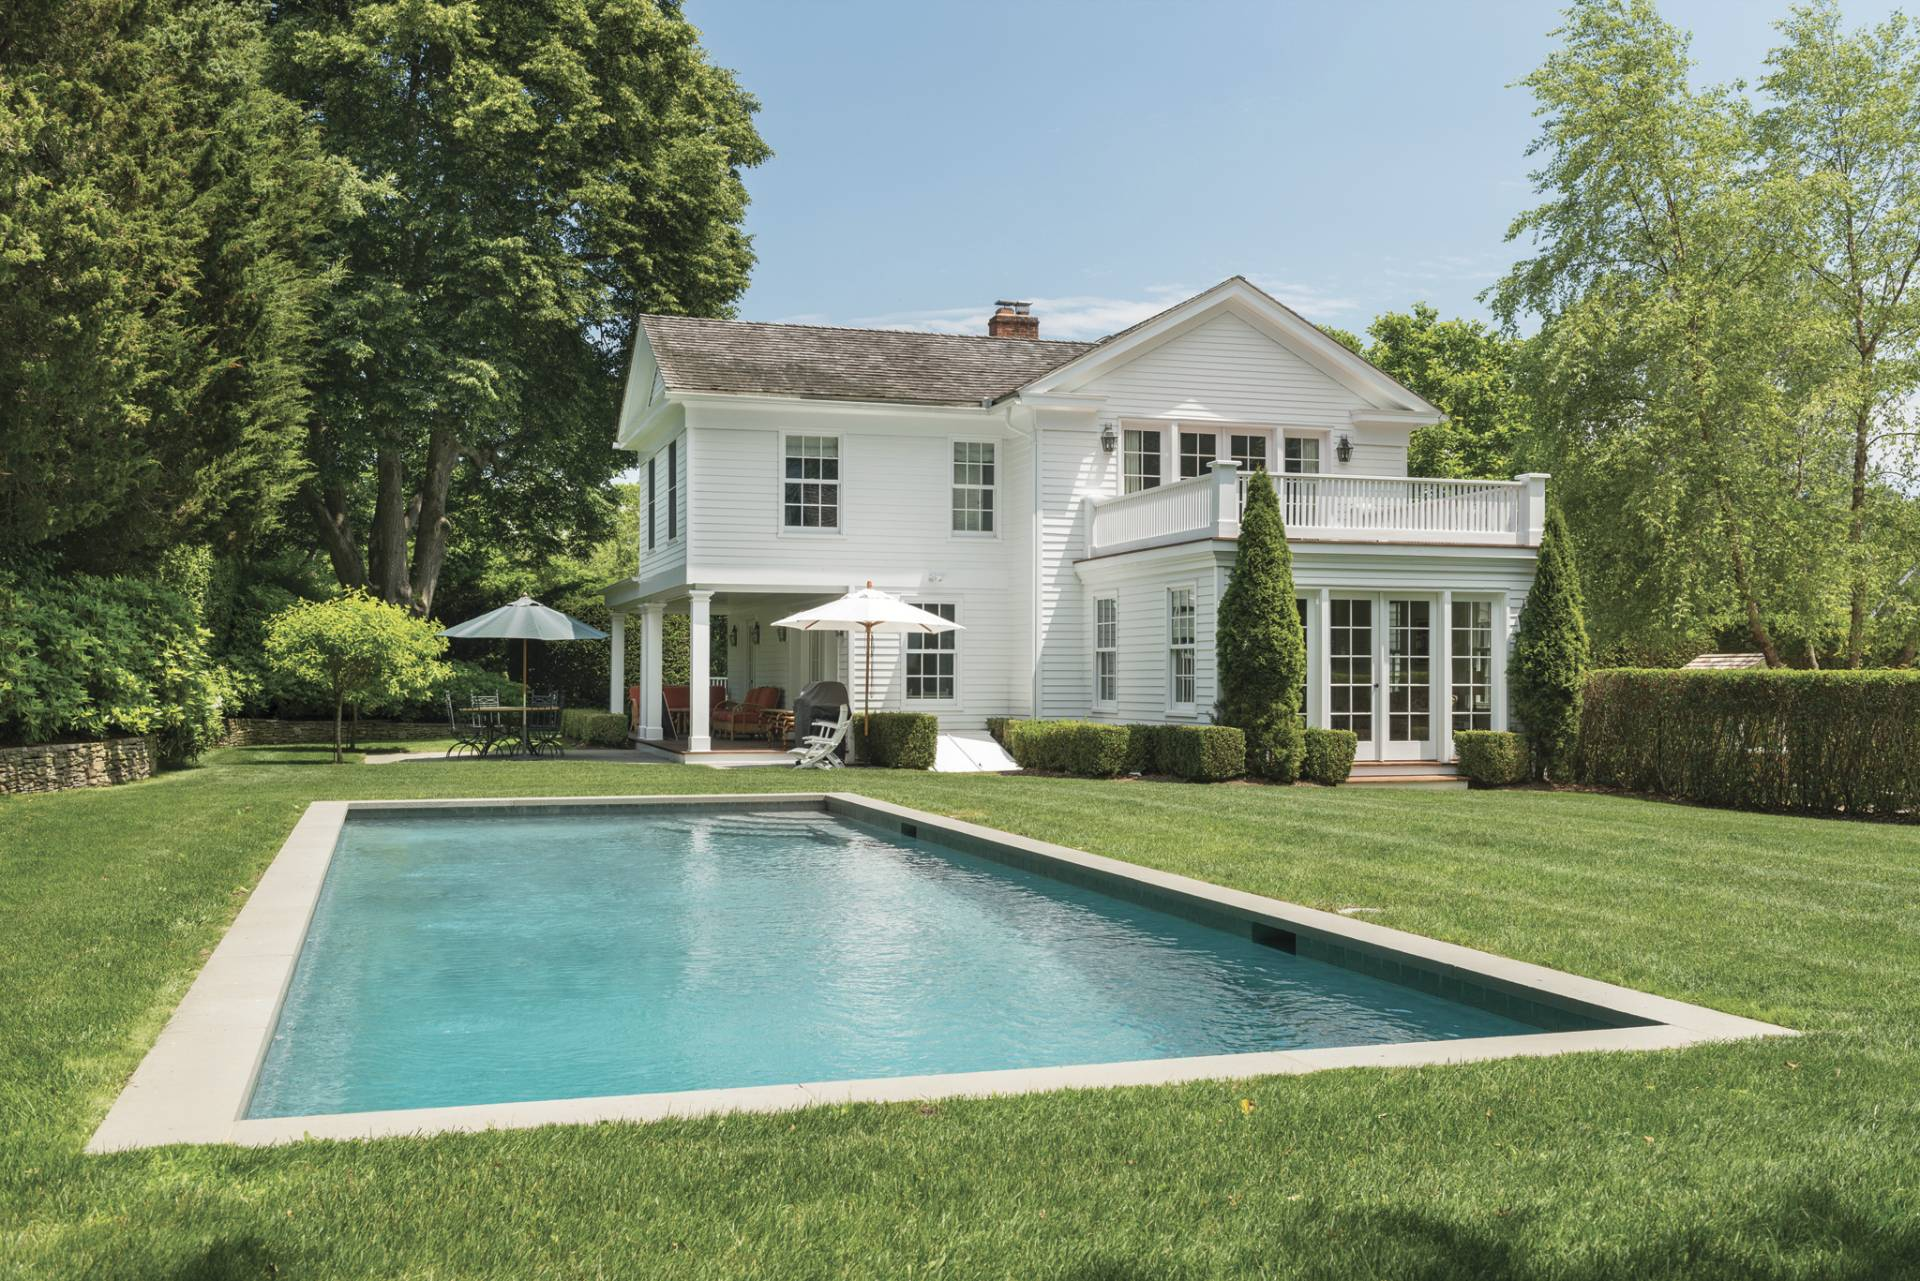 Single Family Home for Sale at Ocean Road Perfection 94 Ocean Road, Bridgehampton, New York